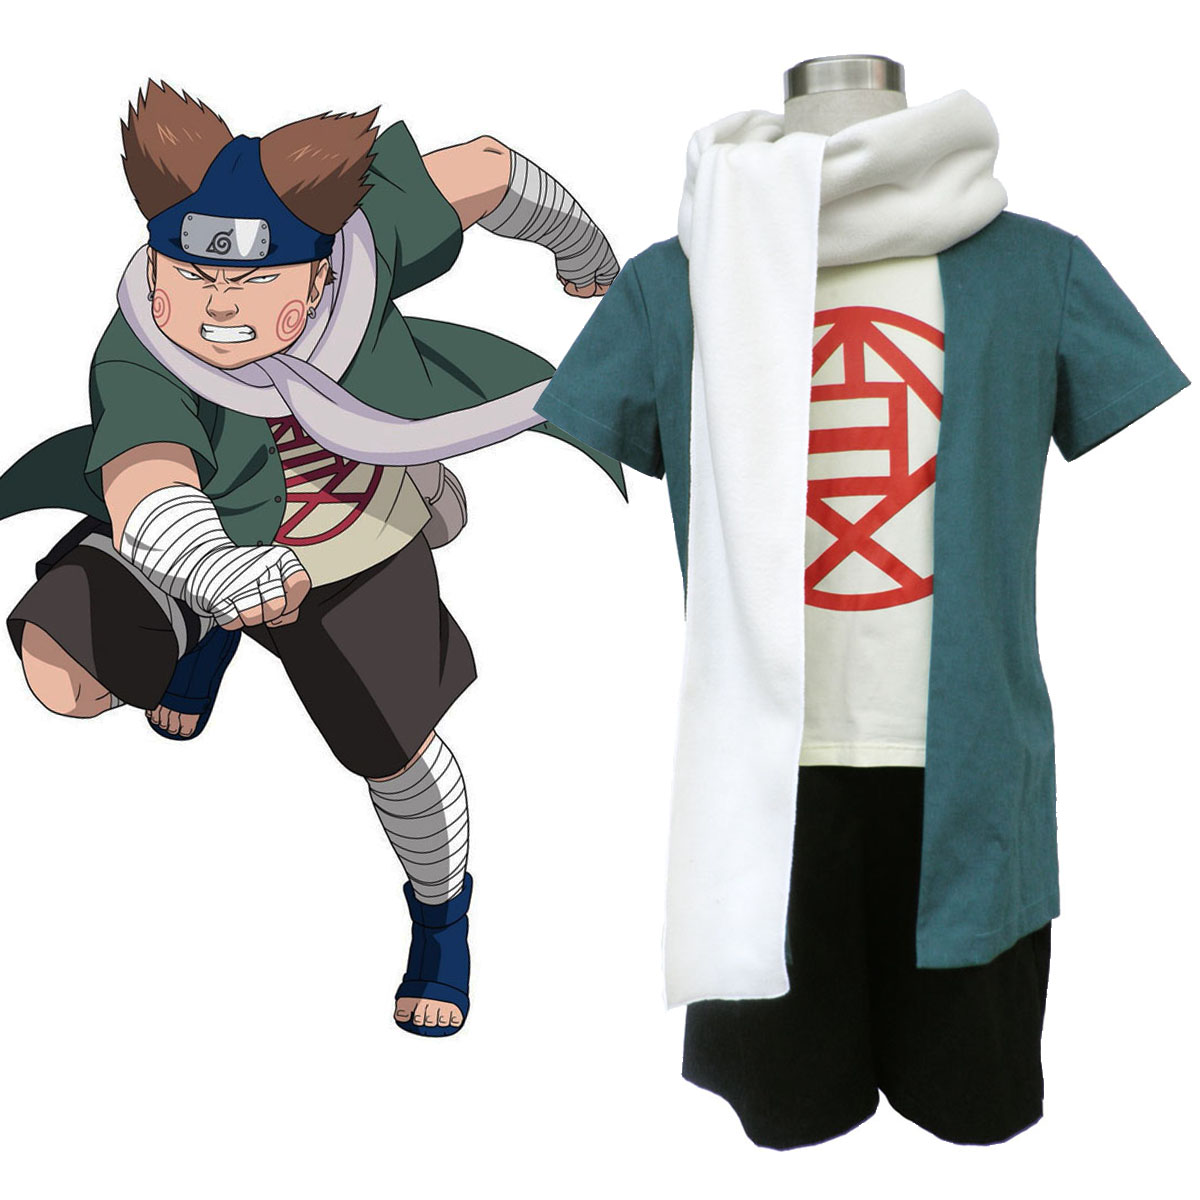 Naruto Choji Akimichi 1 Anime Cosplay Costumes Outfit